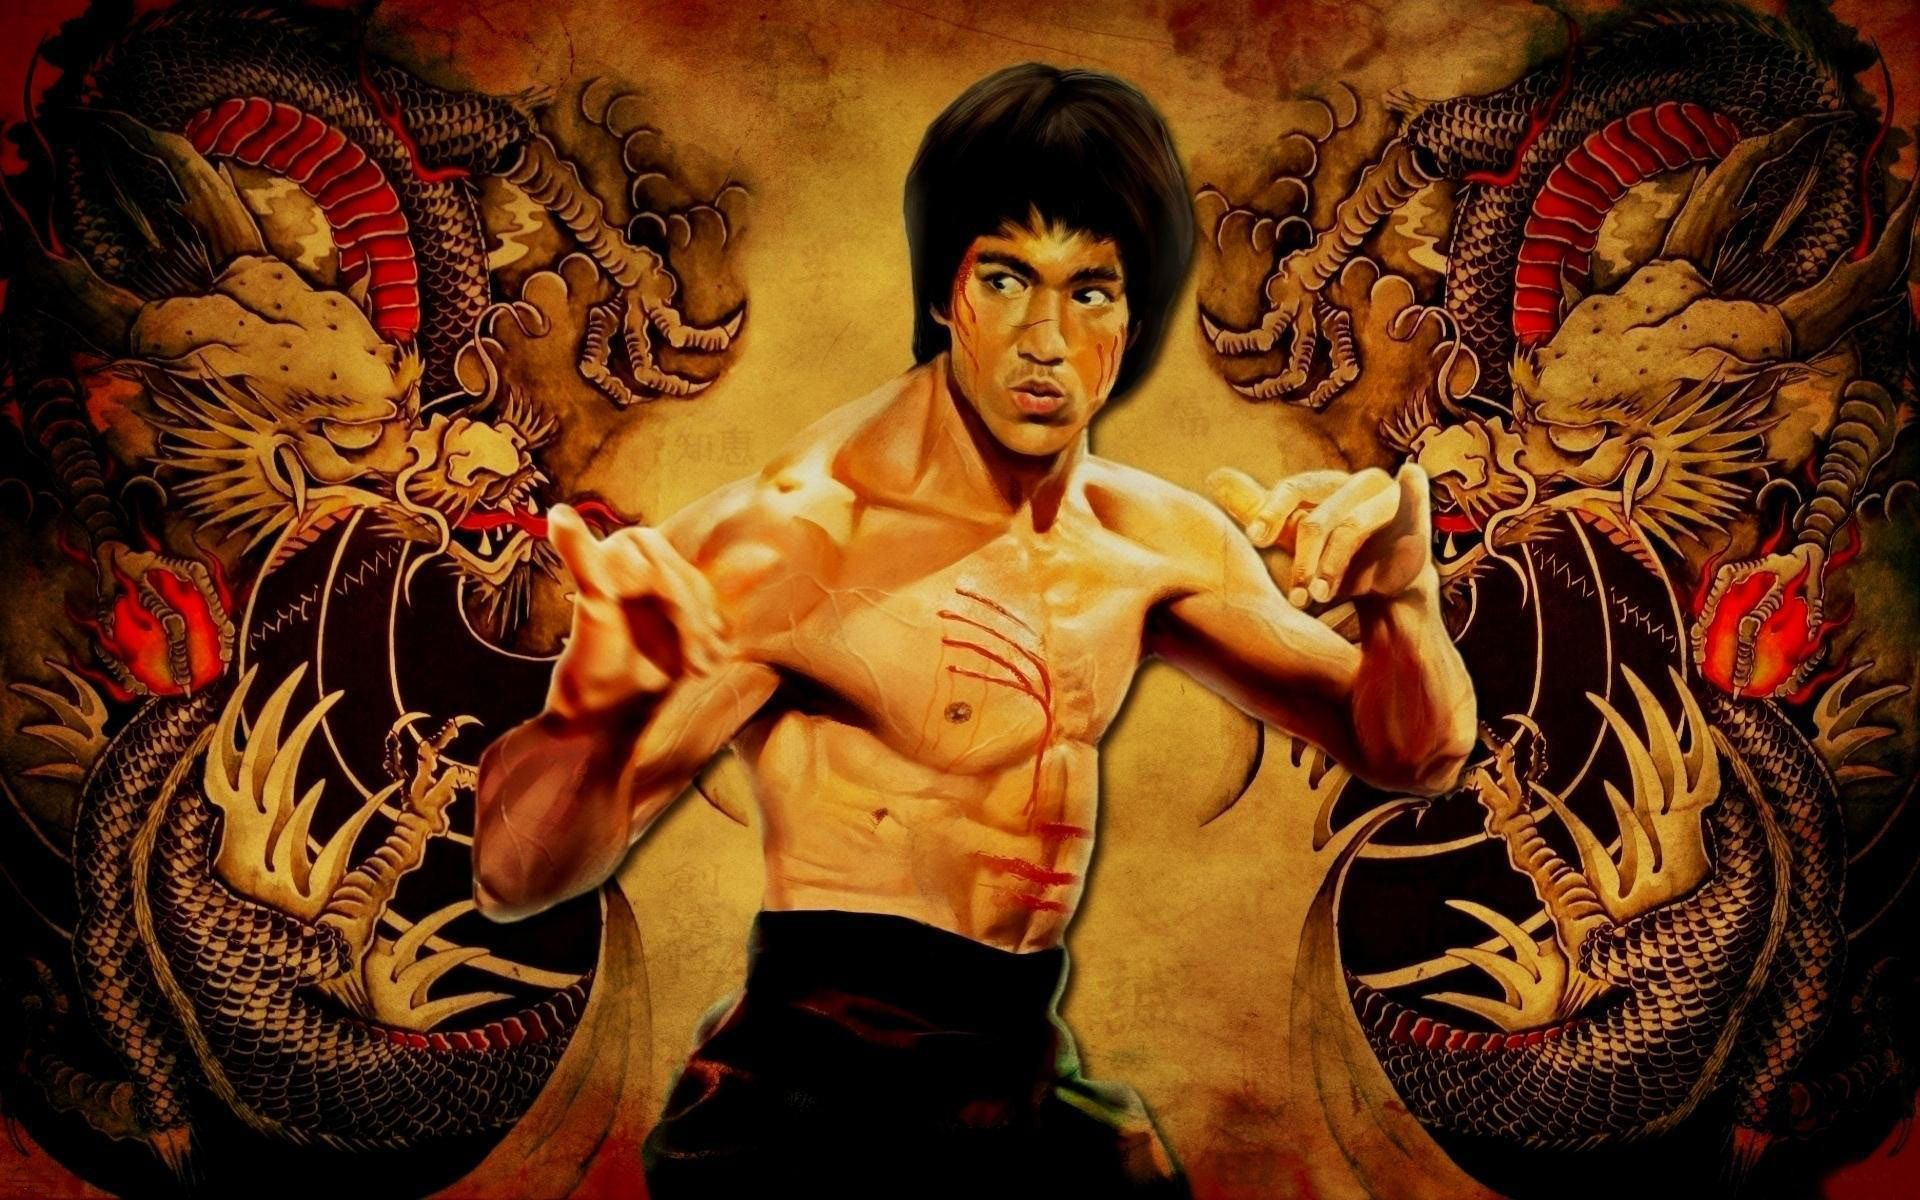 3d Wallpaper Of Bruce Lee Bruce Lee Martial Arts Bruce Lee